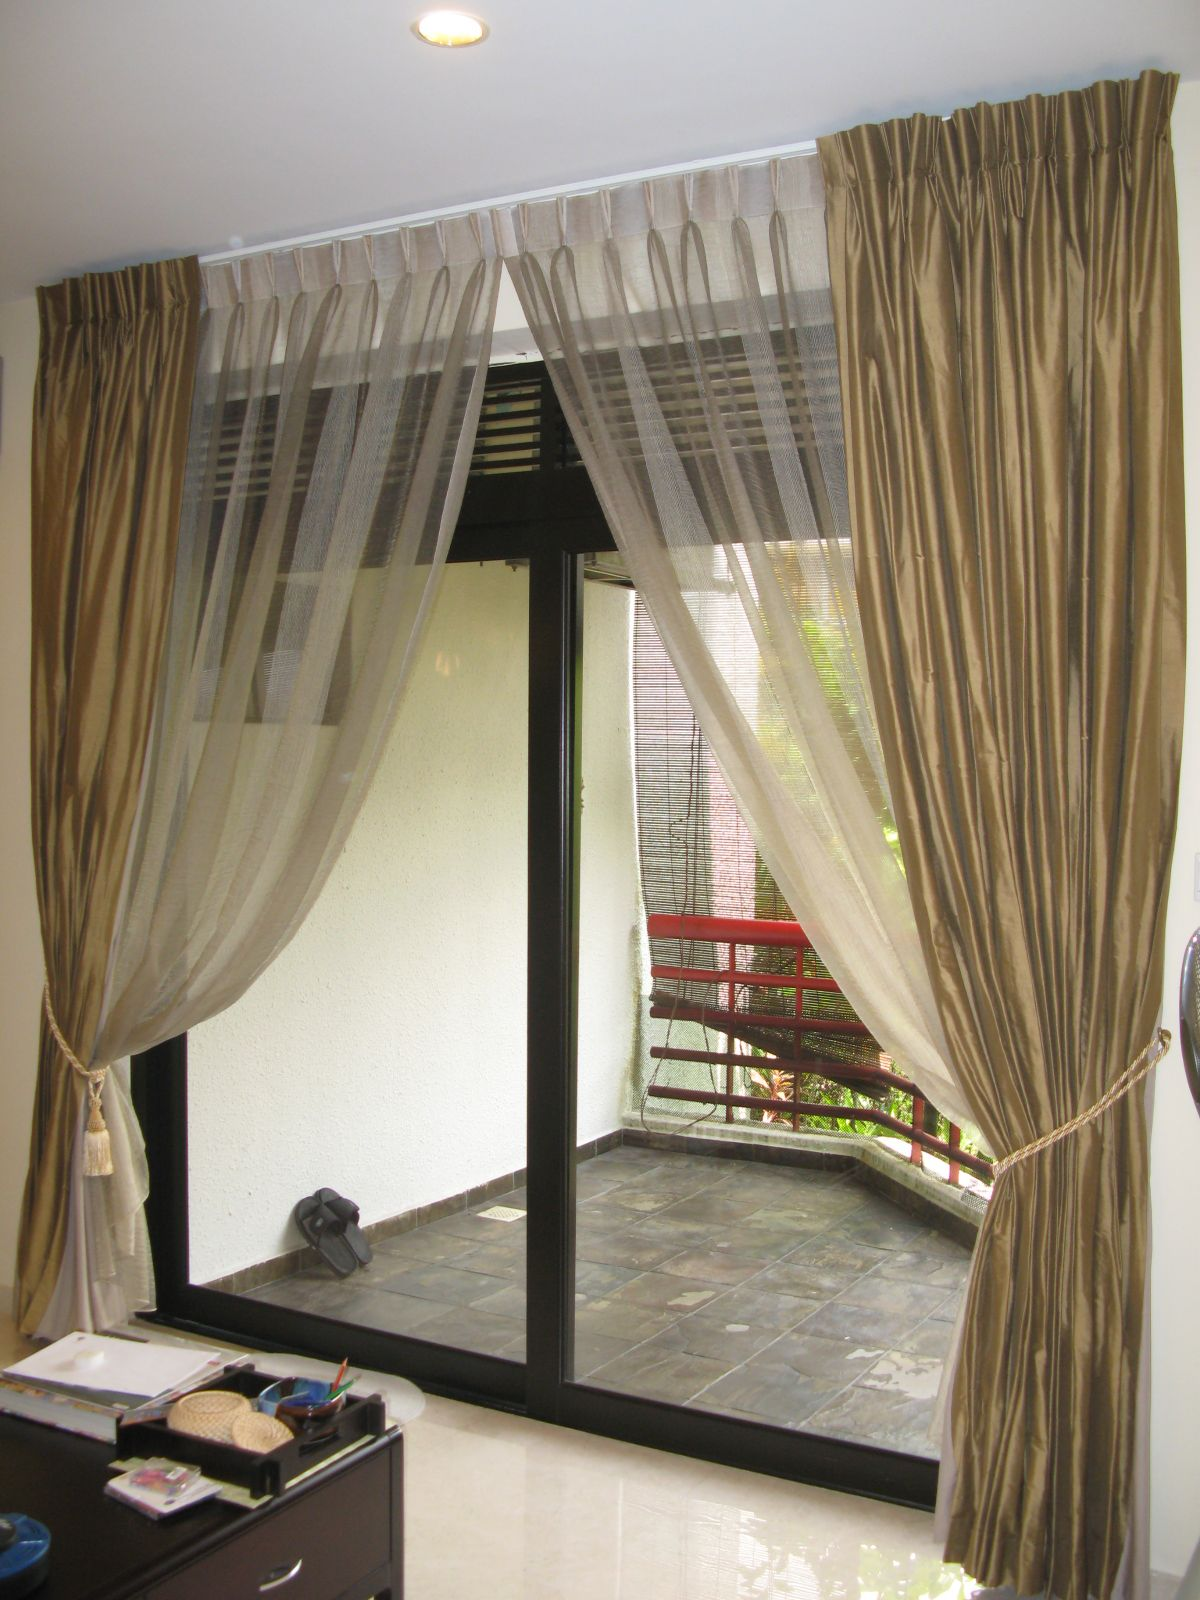 Interior design about curtains Share your favorite Interior